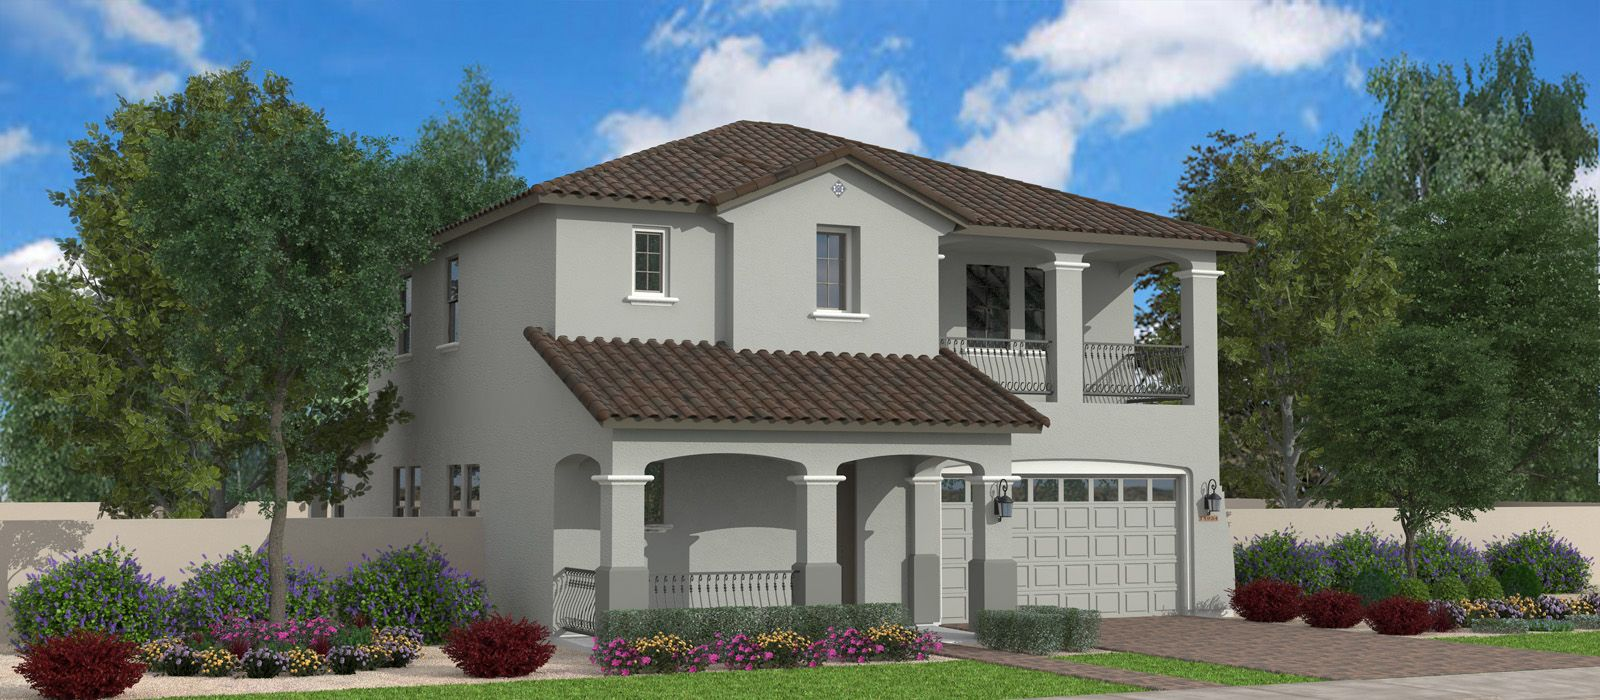 The Greyhound is 2752 square feet, two story, 3 car garage